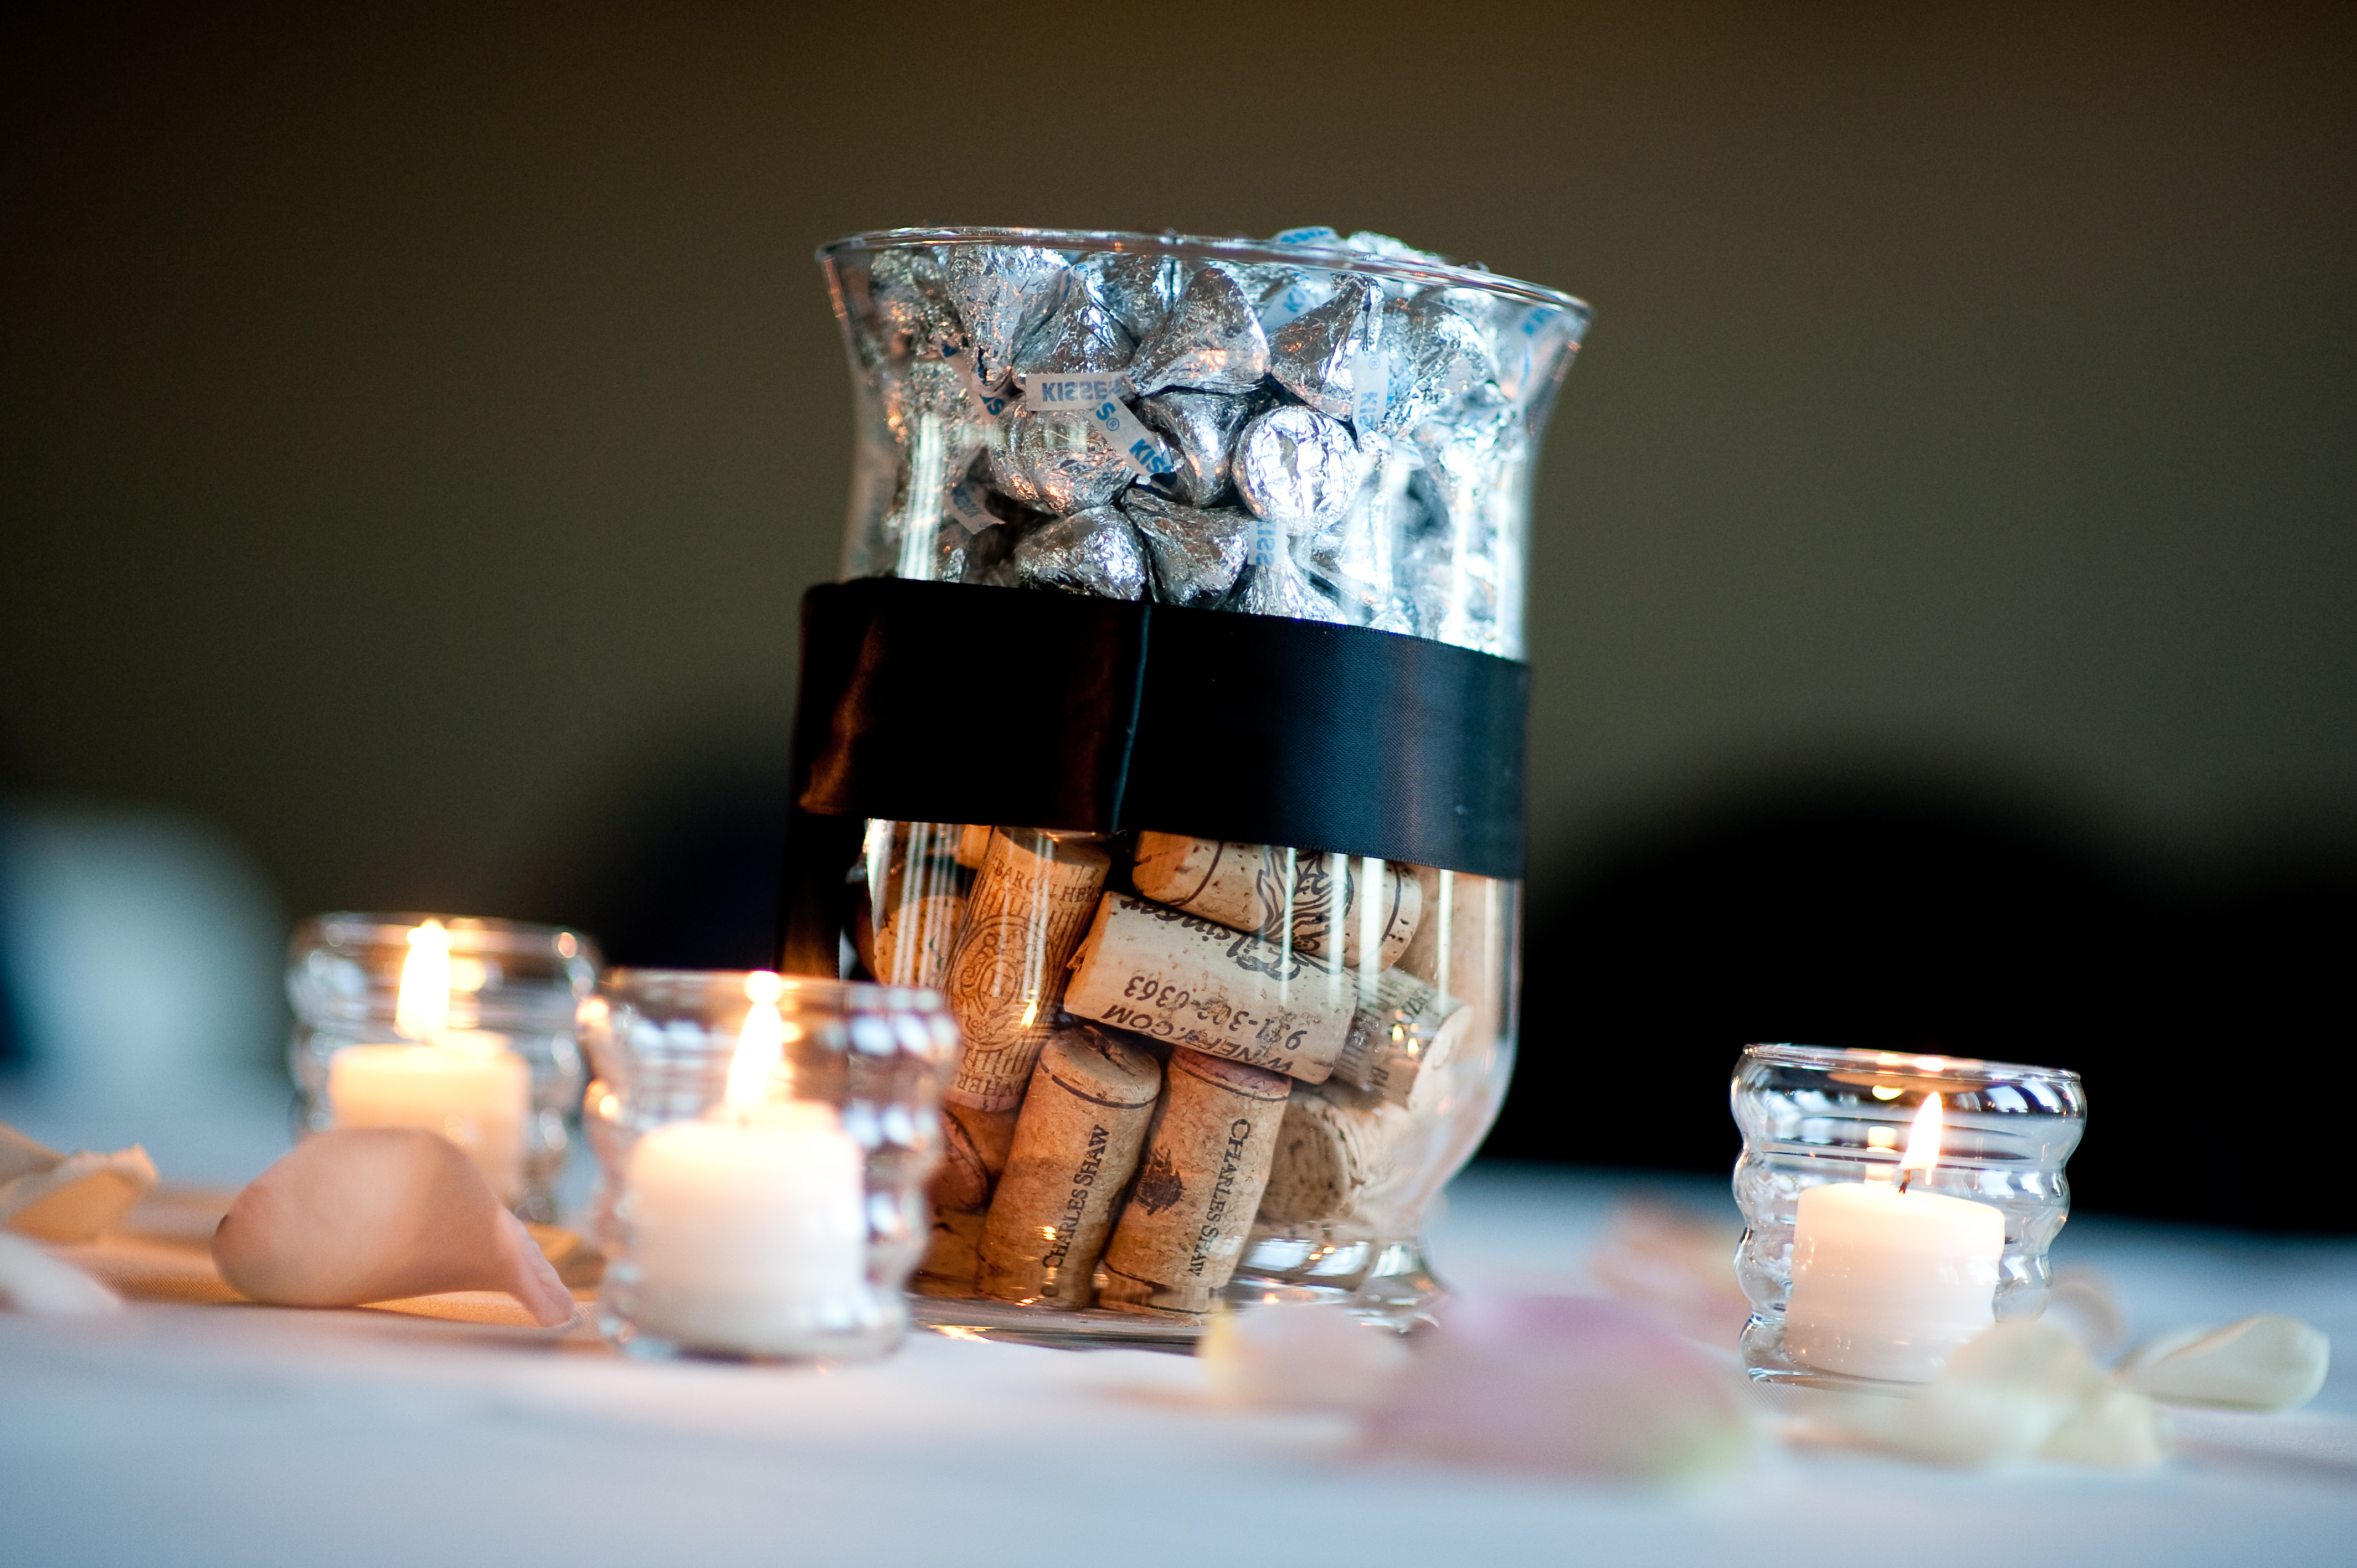 DIY, Reception, Flowers & Decor, black, Centerpieces, Centerpiece, Corks